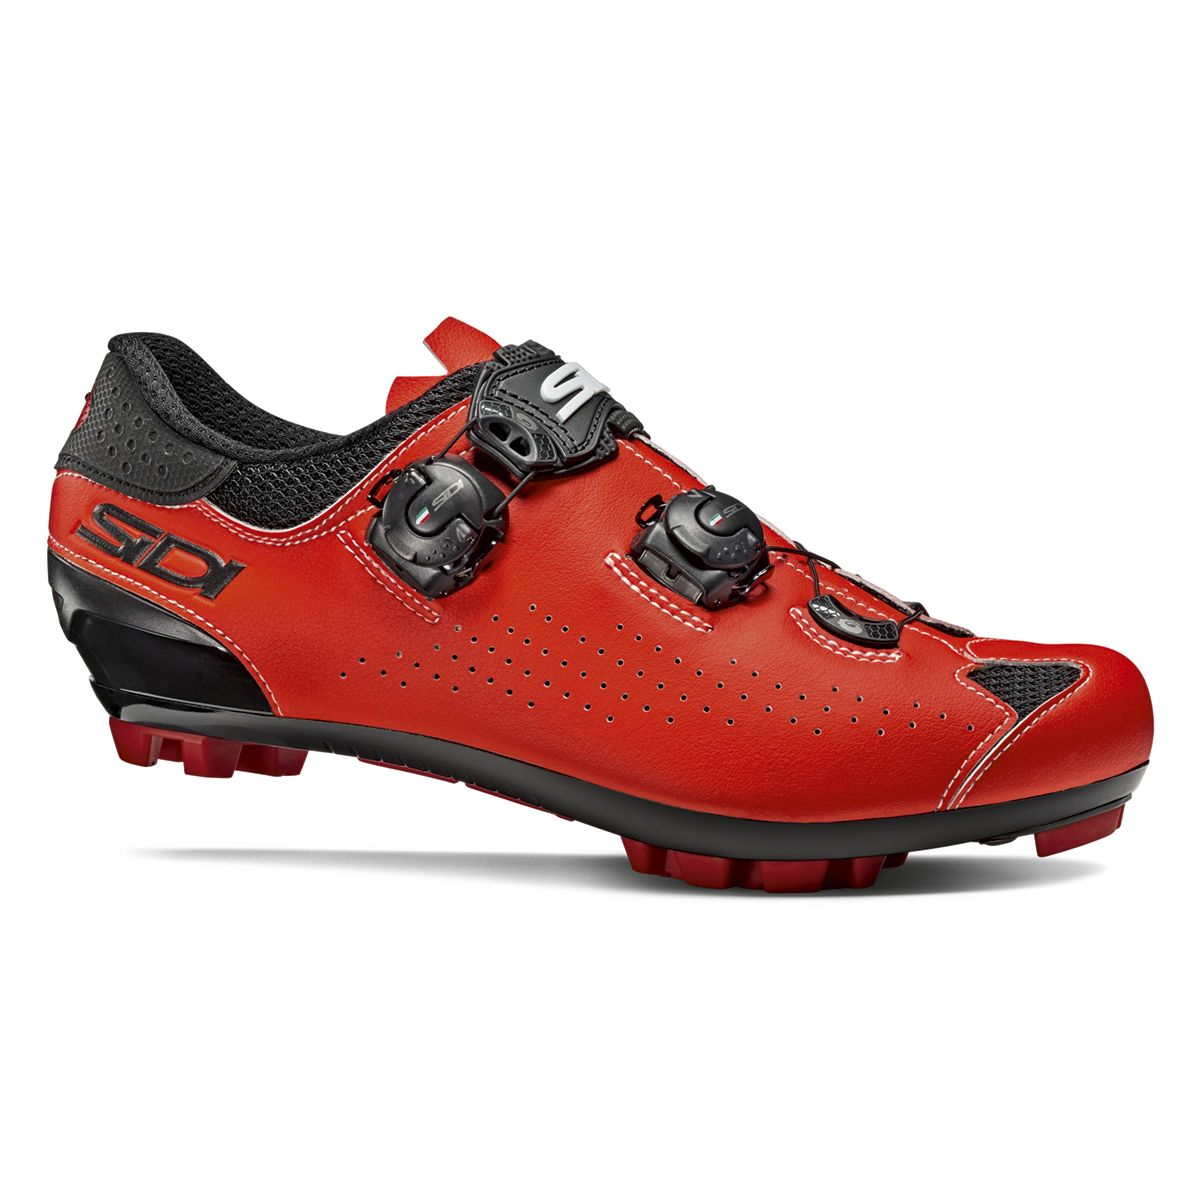 EAGLE 10 MTB Shoes